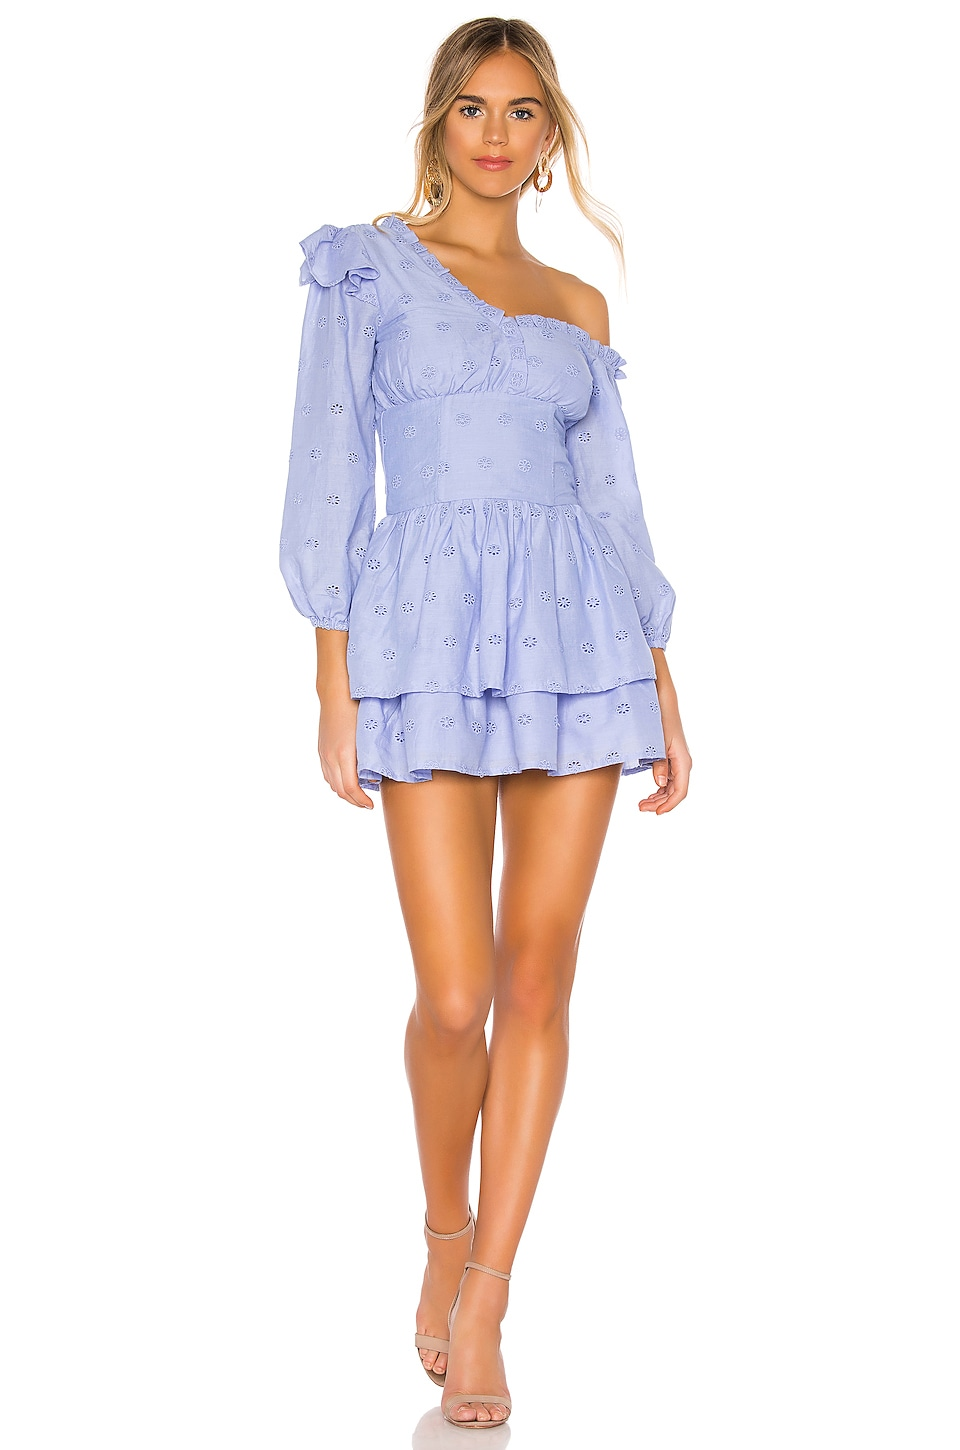 MAJORELLE Oliver Mini Dress in Periwinkle Blue